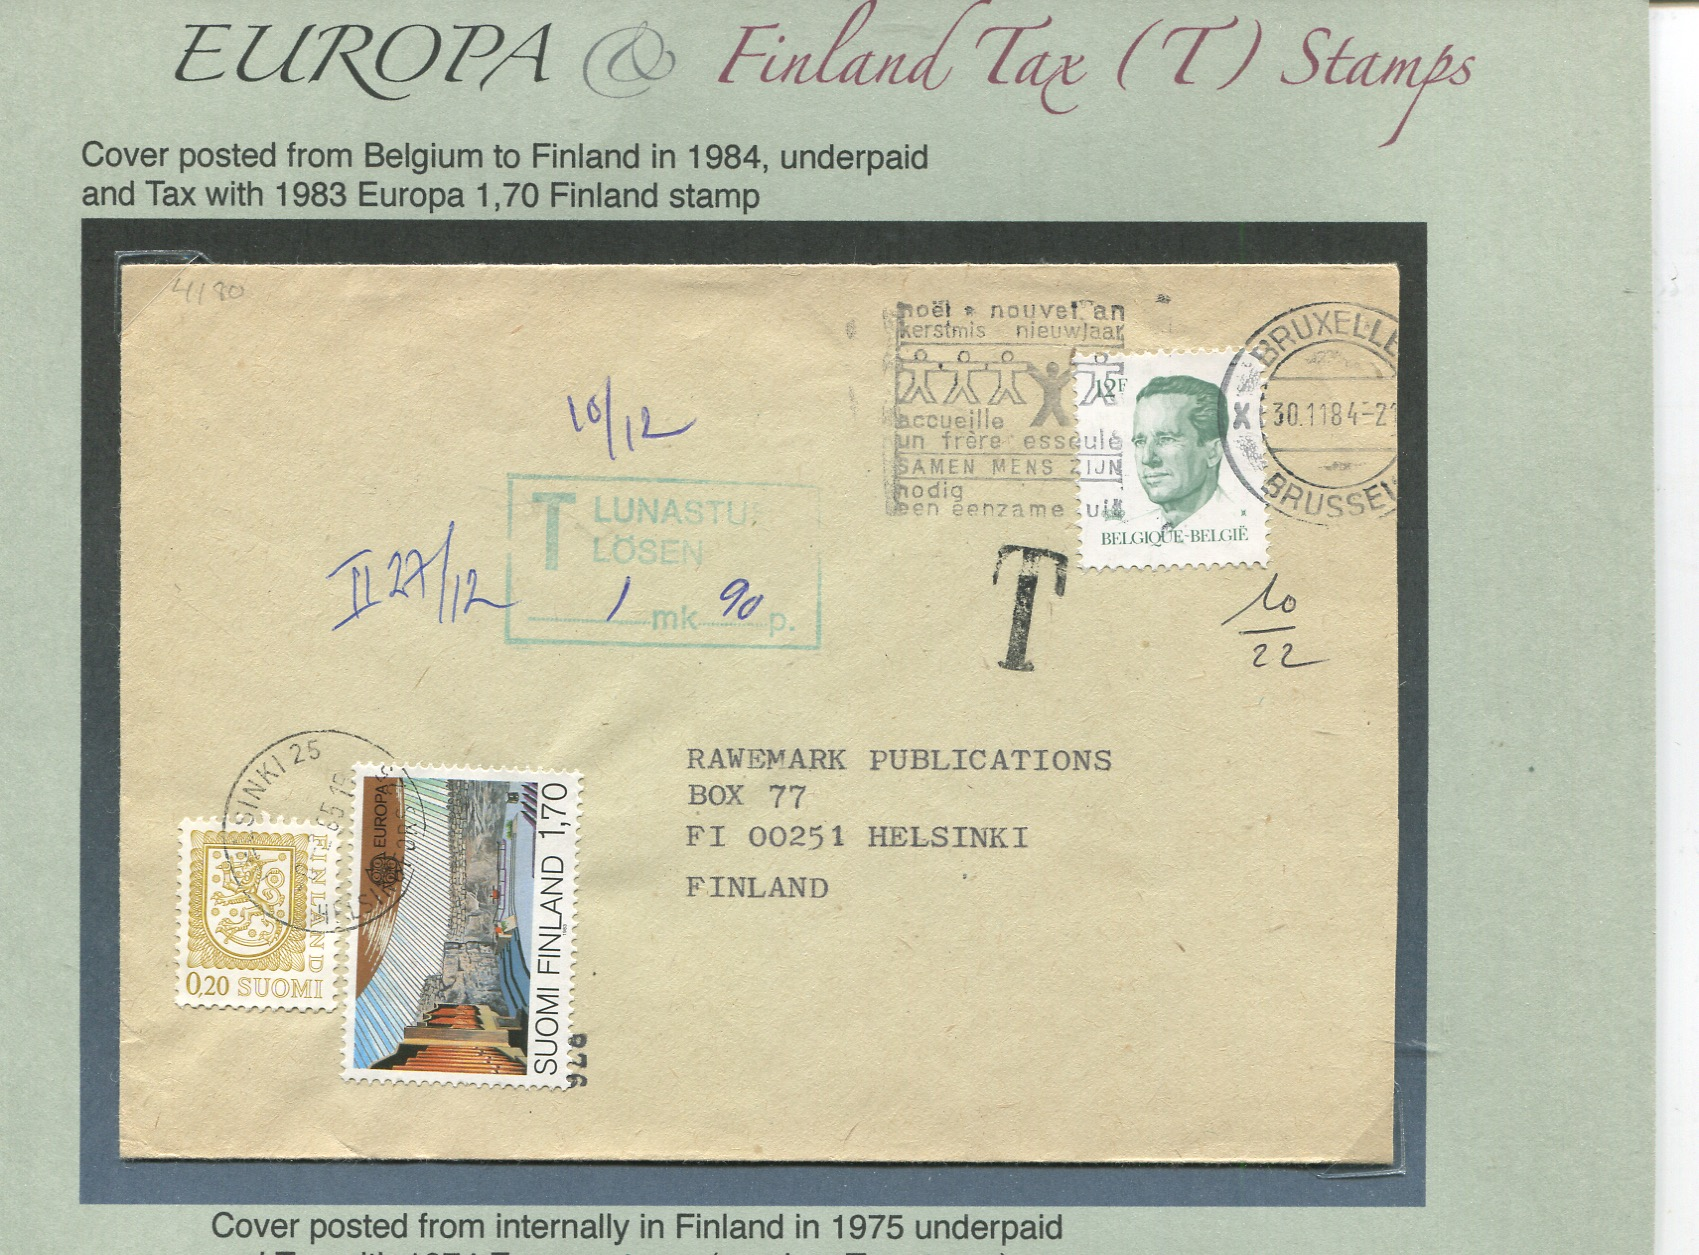 EUROPA stamp used as TAX stamp by Finland